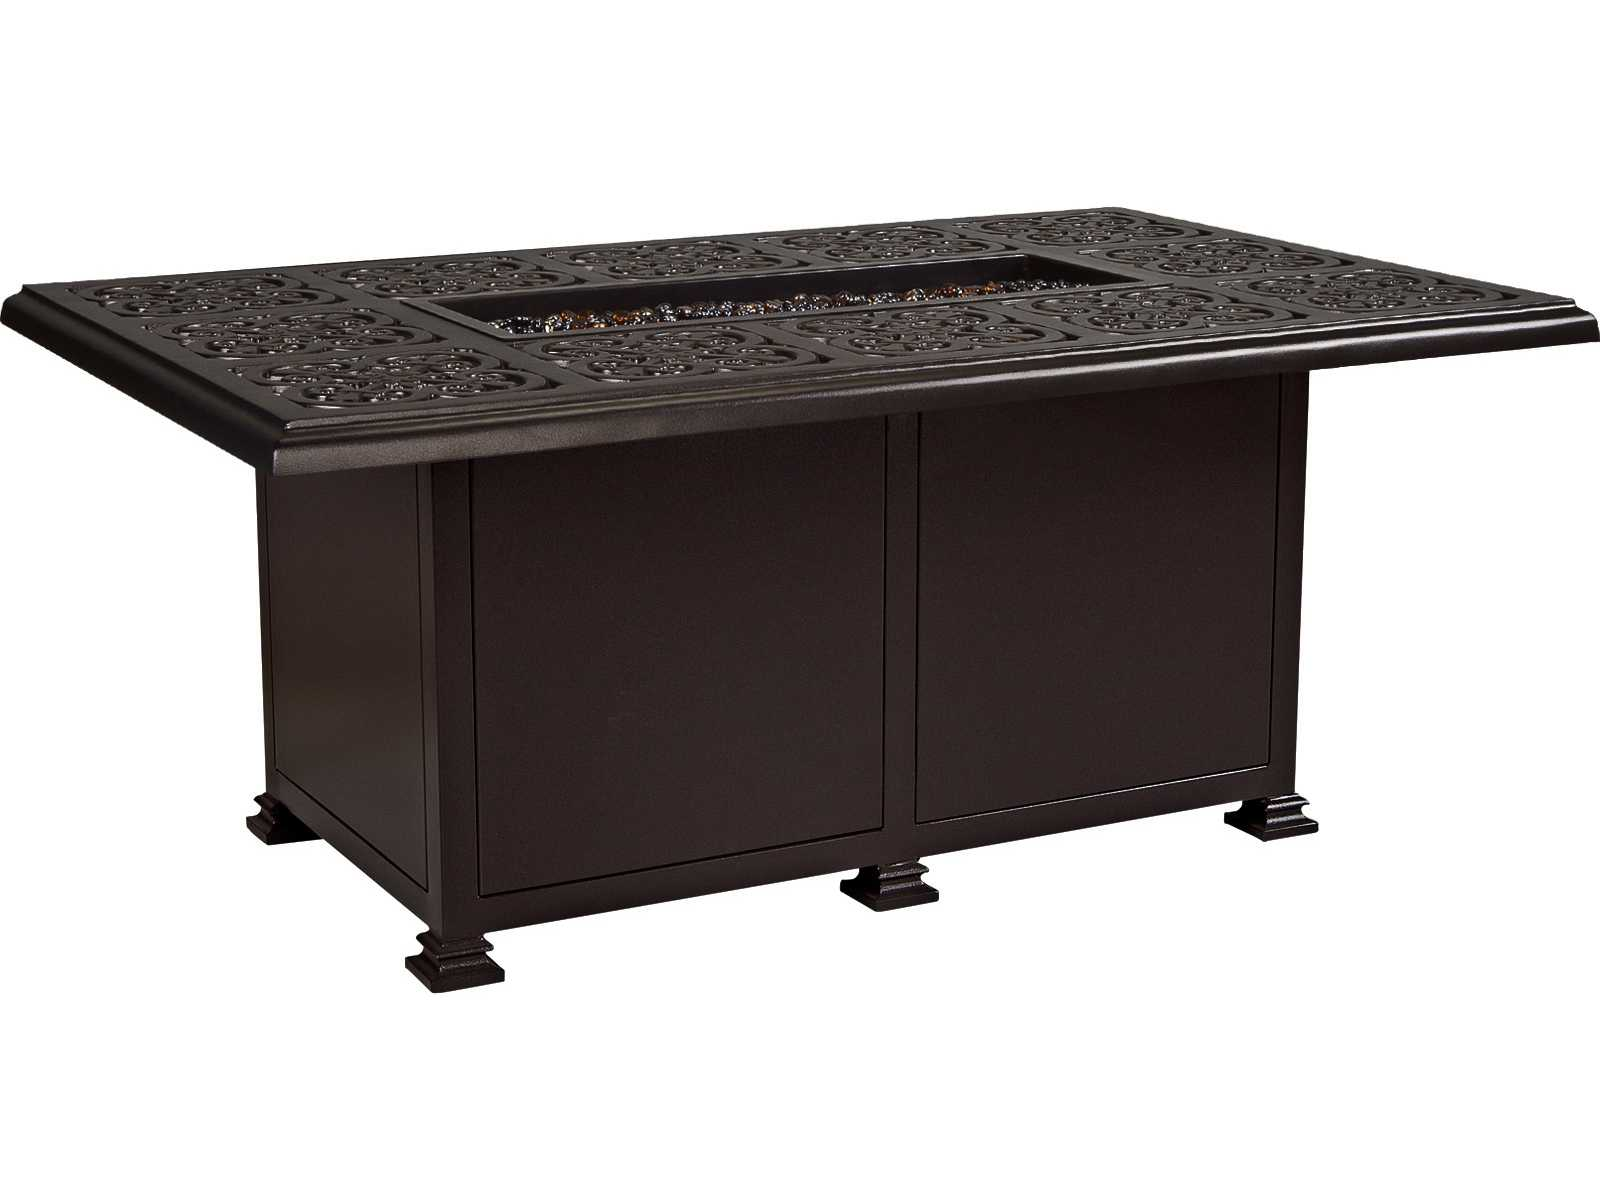 Ow lee casual fireside hacienda wrought iron 58 x 36 for Concreteworks fire table